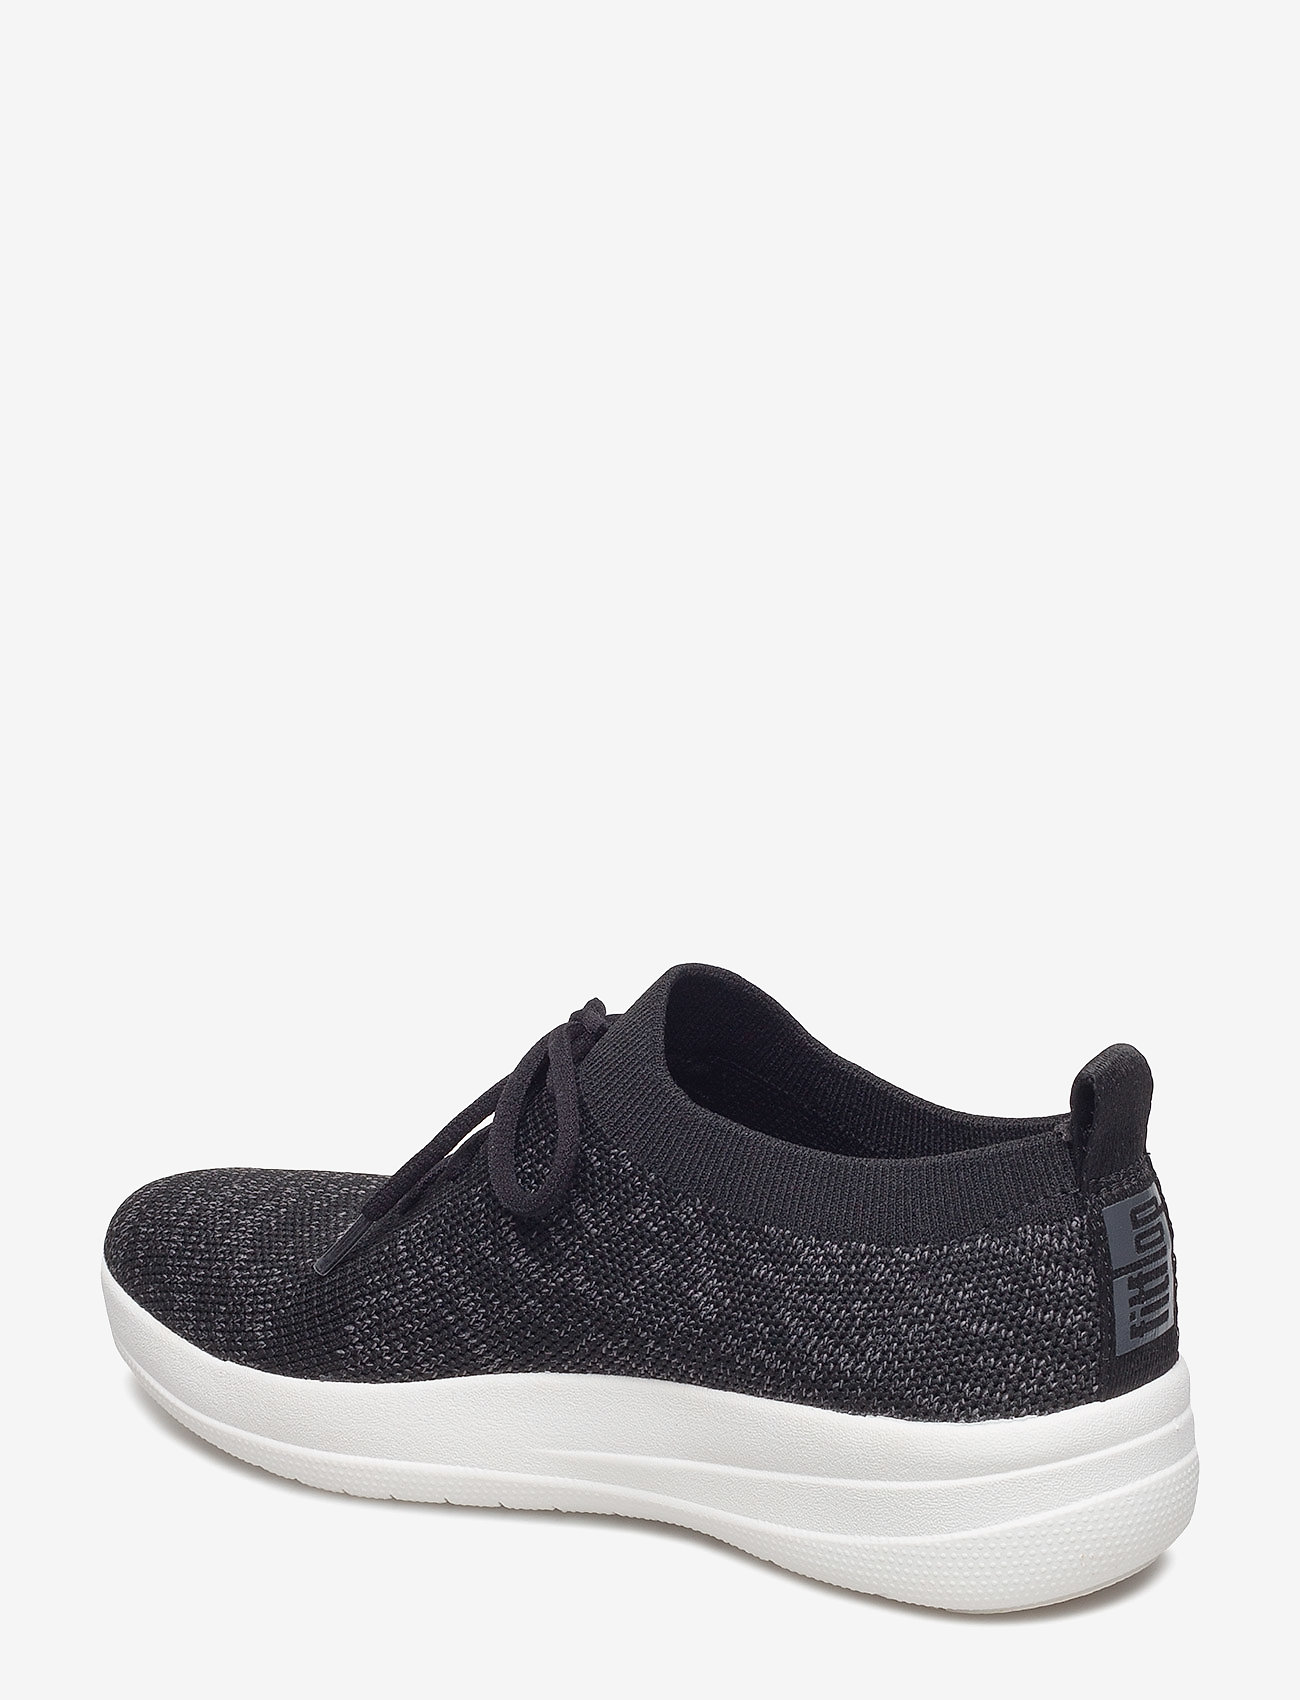 F-sporty Uberknit Sneakers (Black) - FitFlop